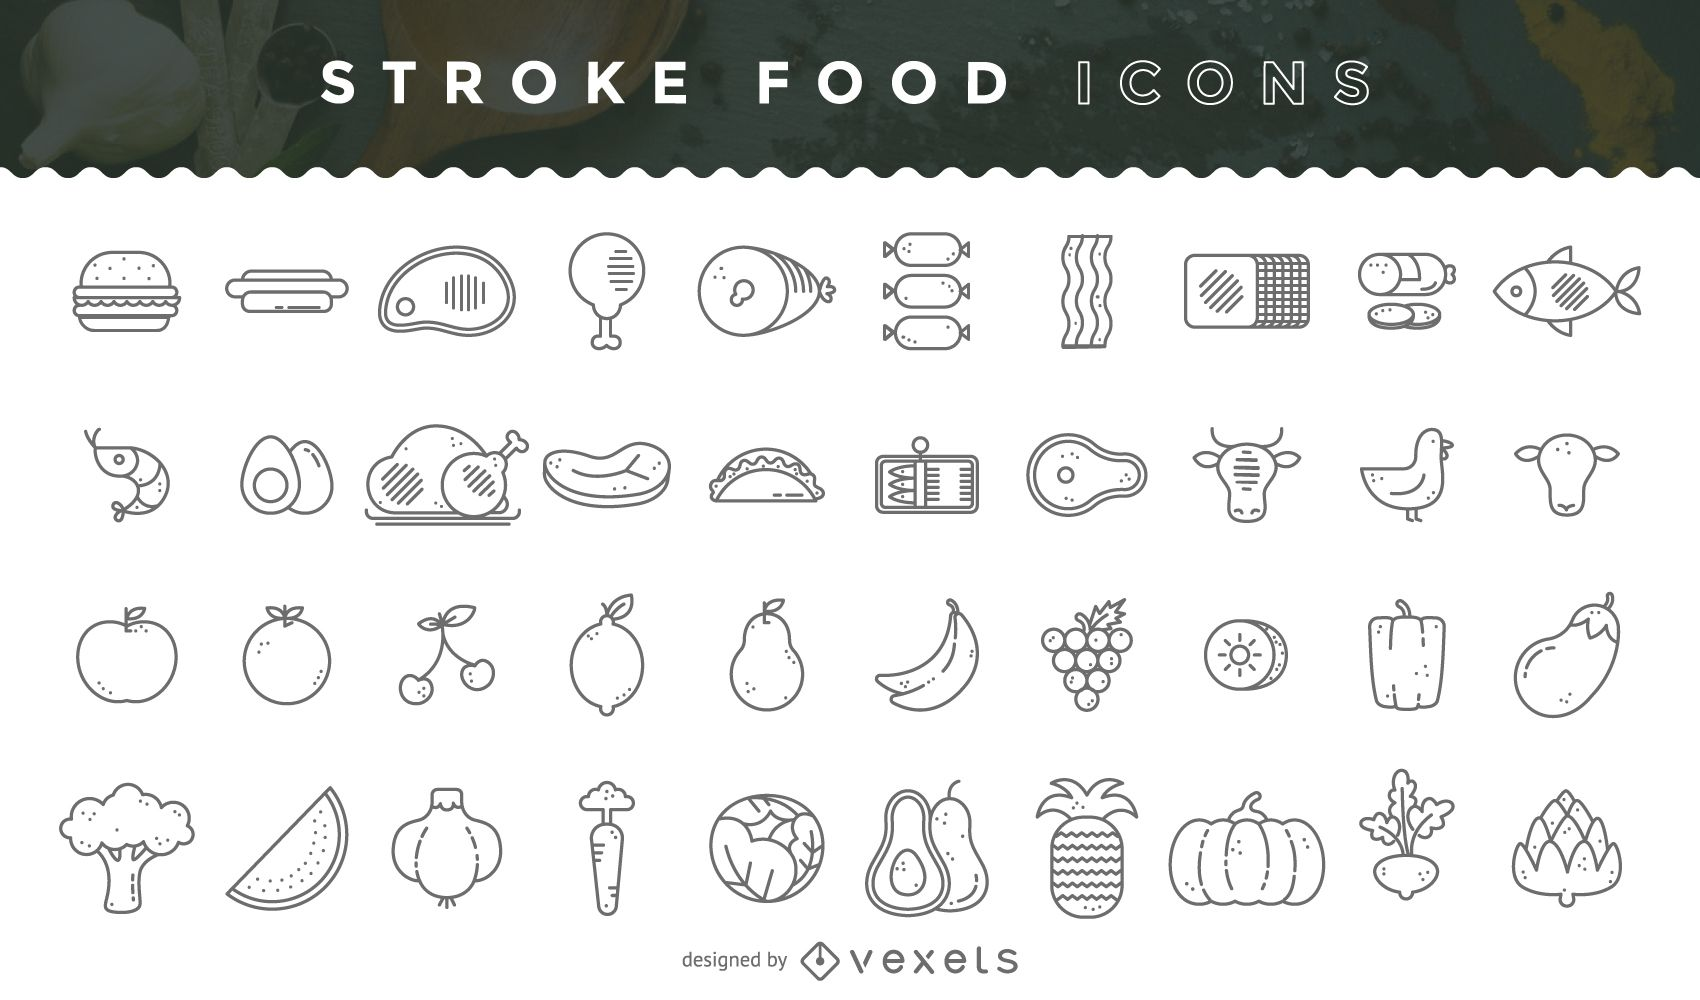 Stroke food icon pack